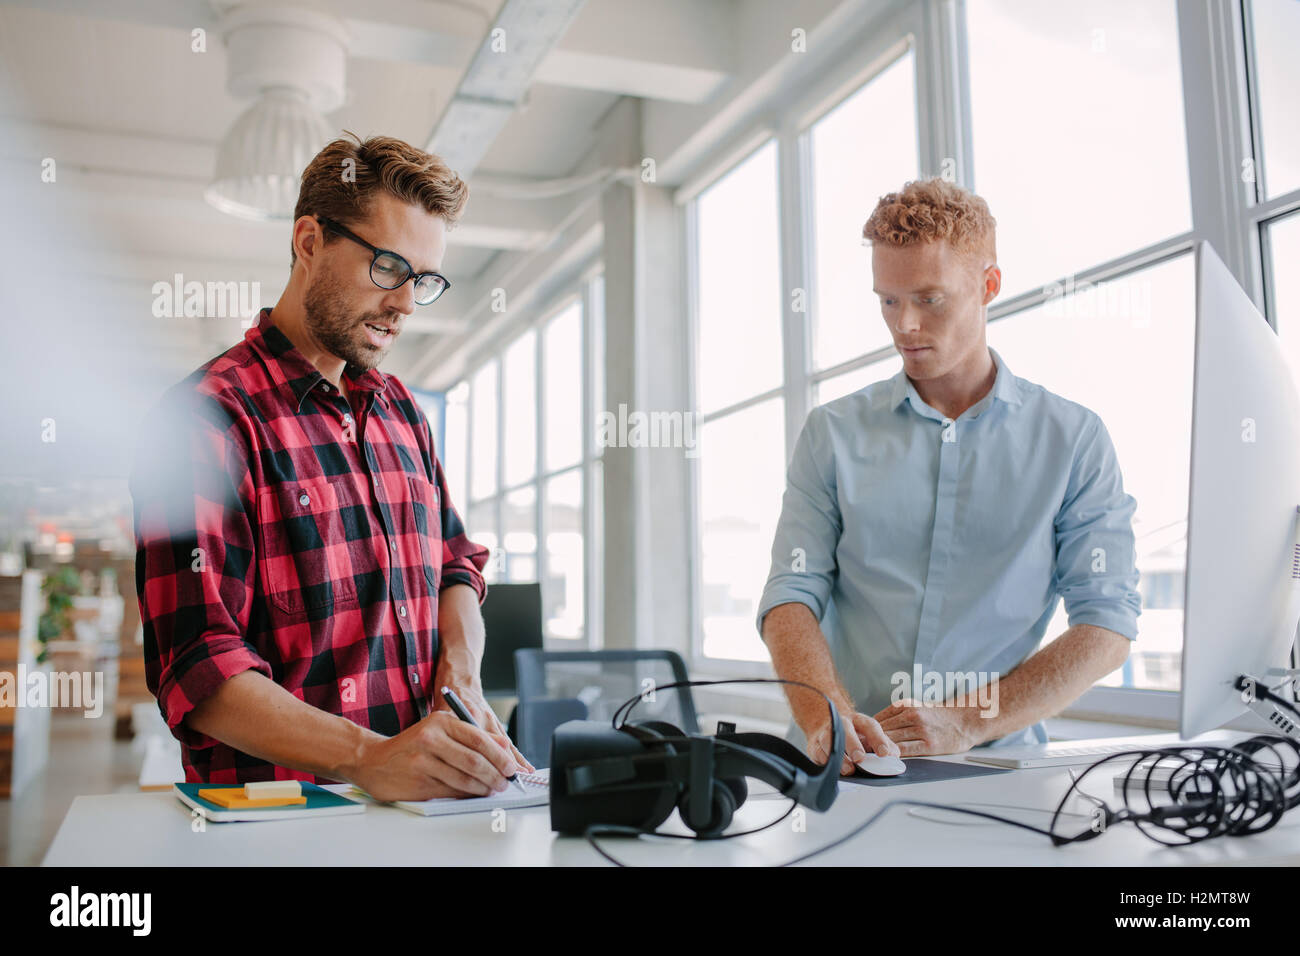 Two young businessman working together. They are standing at a table with virtual reality glasses. One using computer - Stock Image